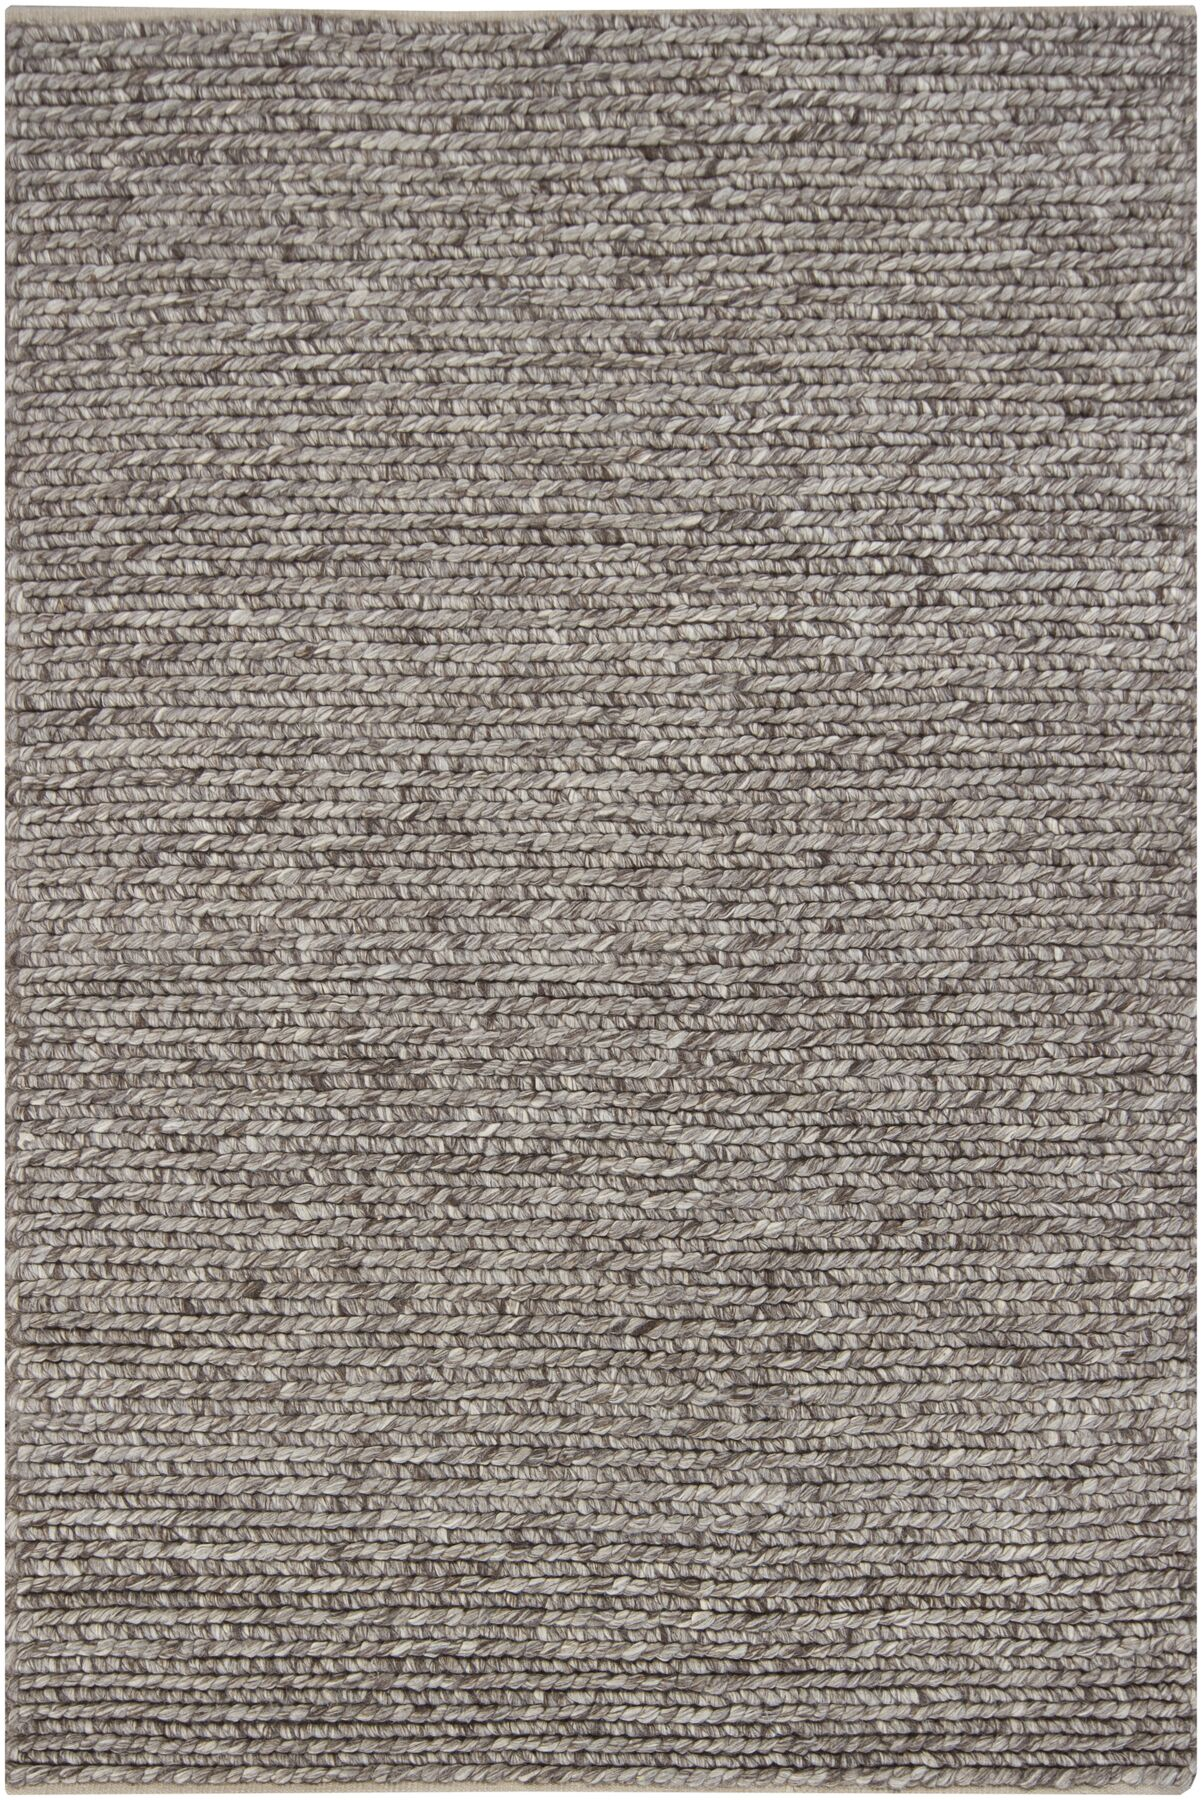 Tilby Hand-Woven Brown Area Rug Size: 5' x 7'6